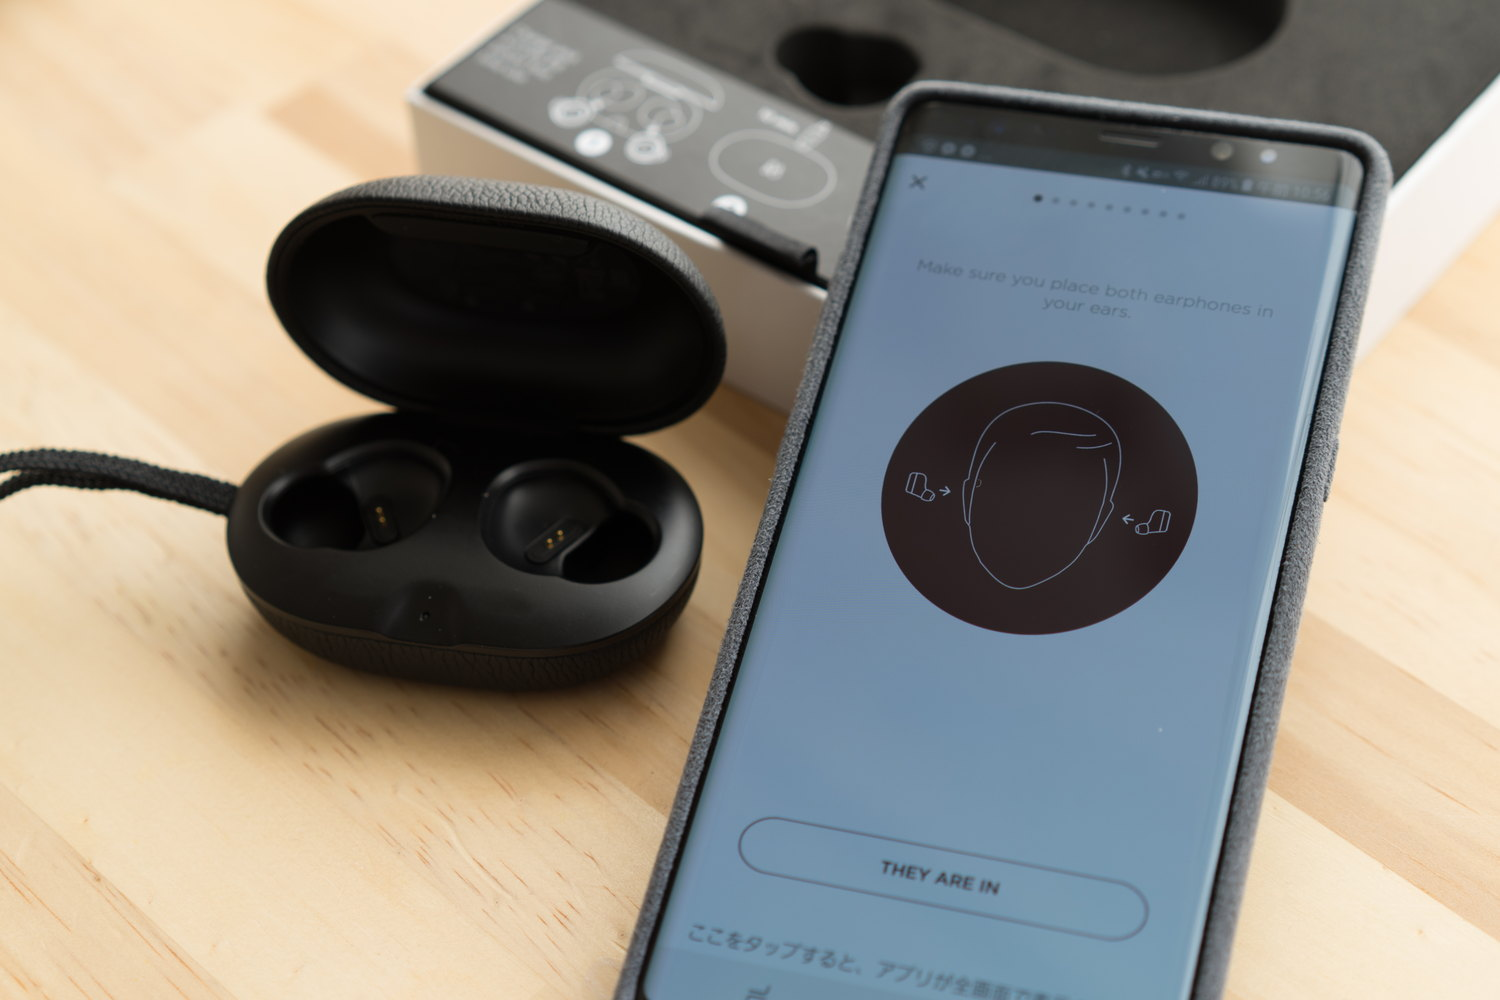 B&O Beoplay E8 の Android 端末とのペアリング